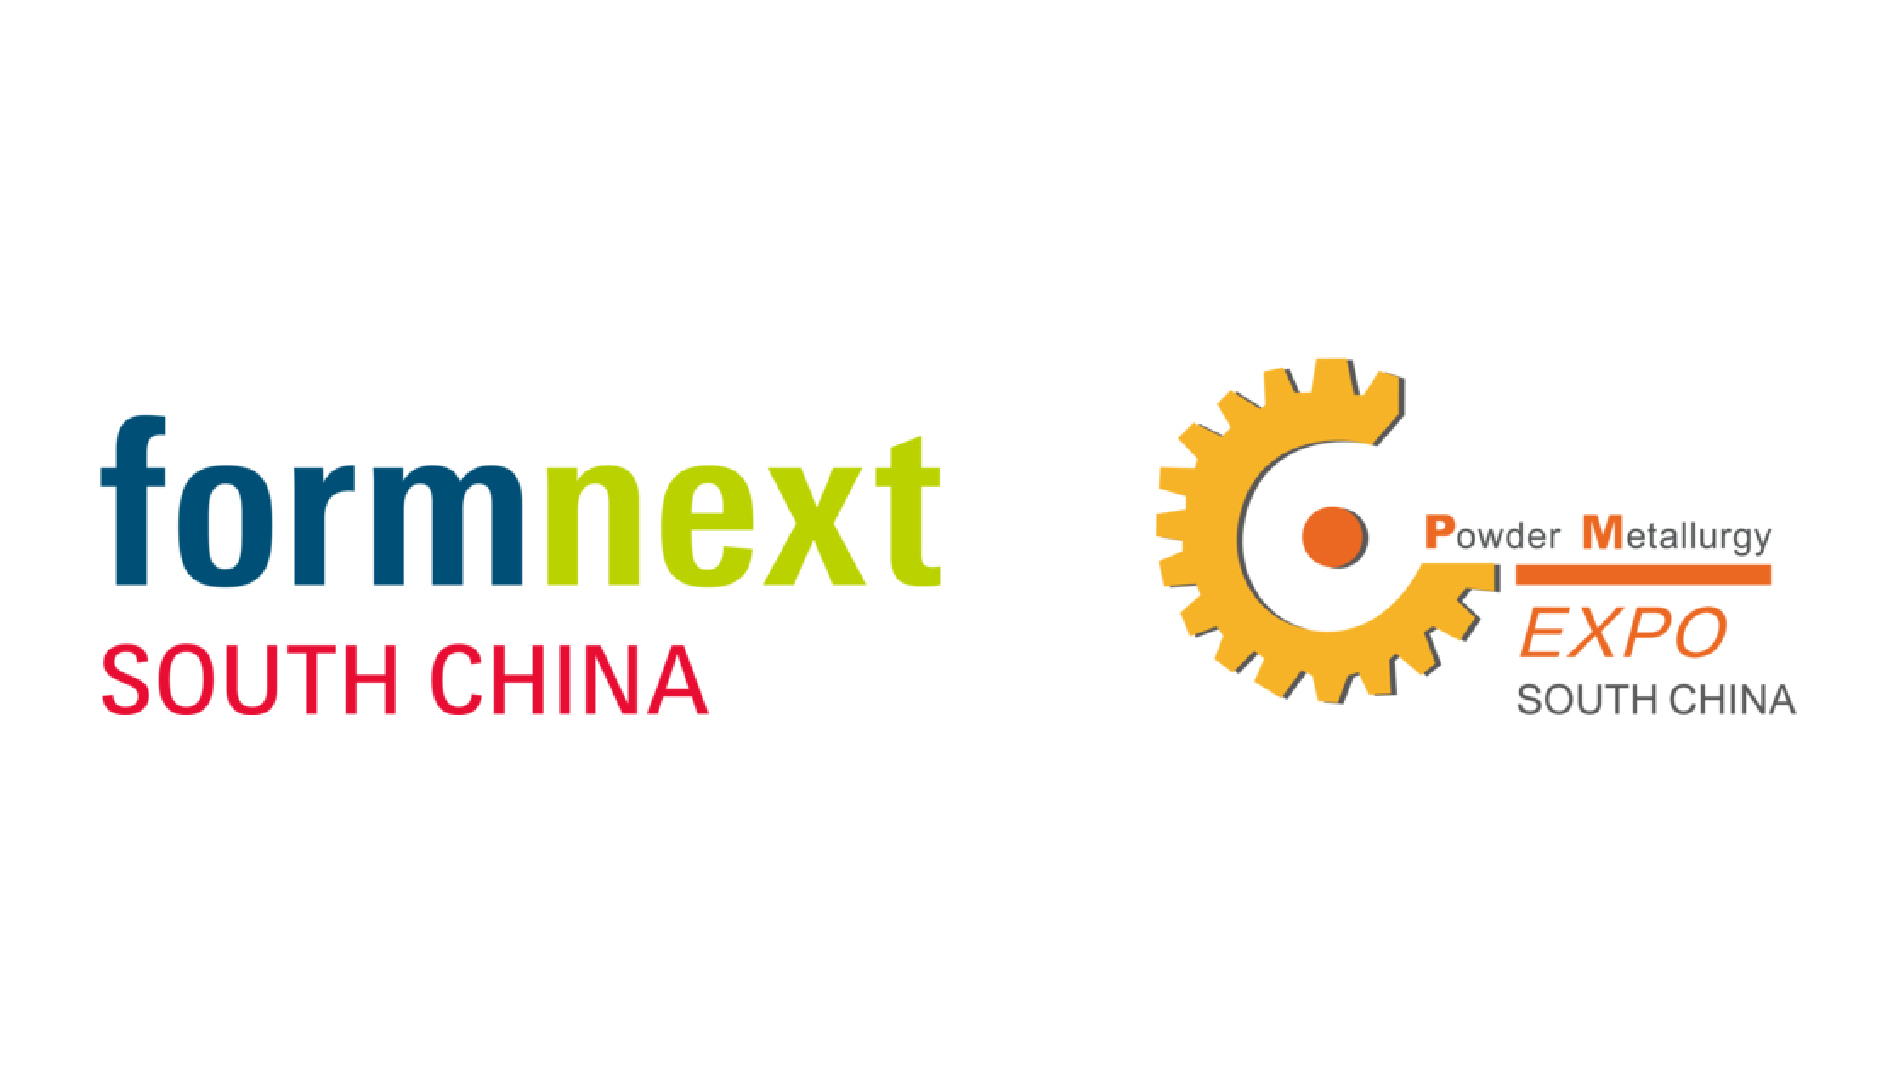 Formnext South China